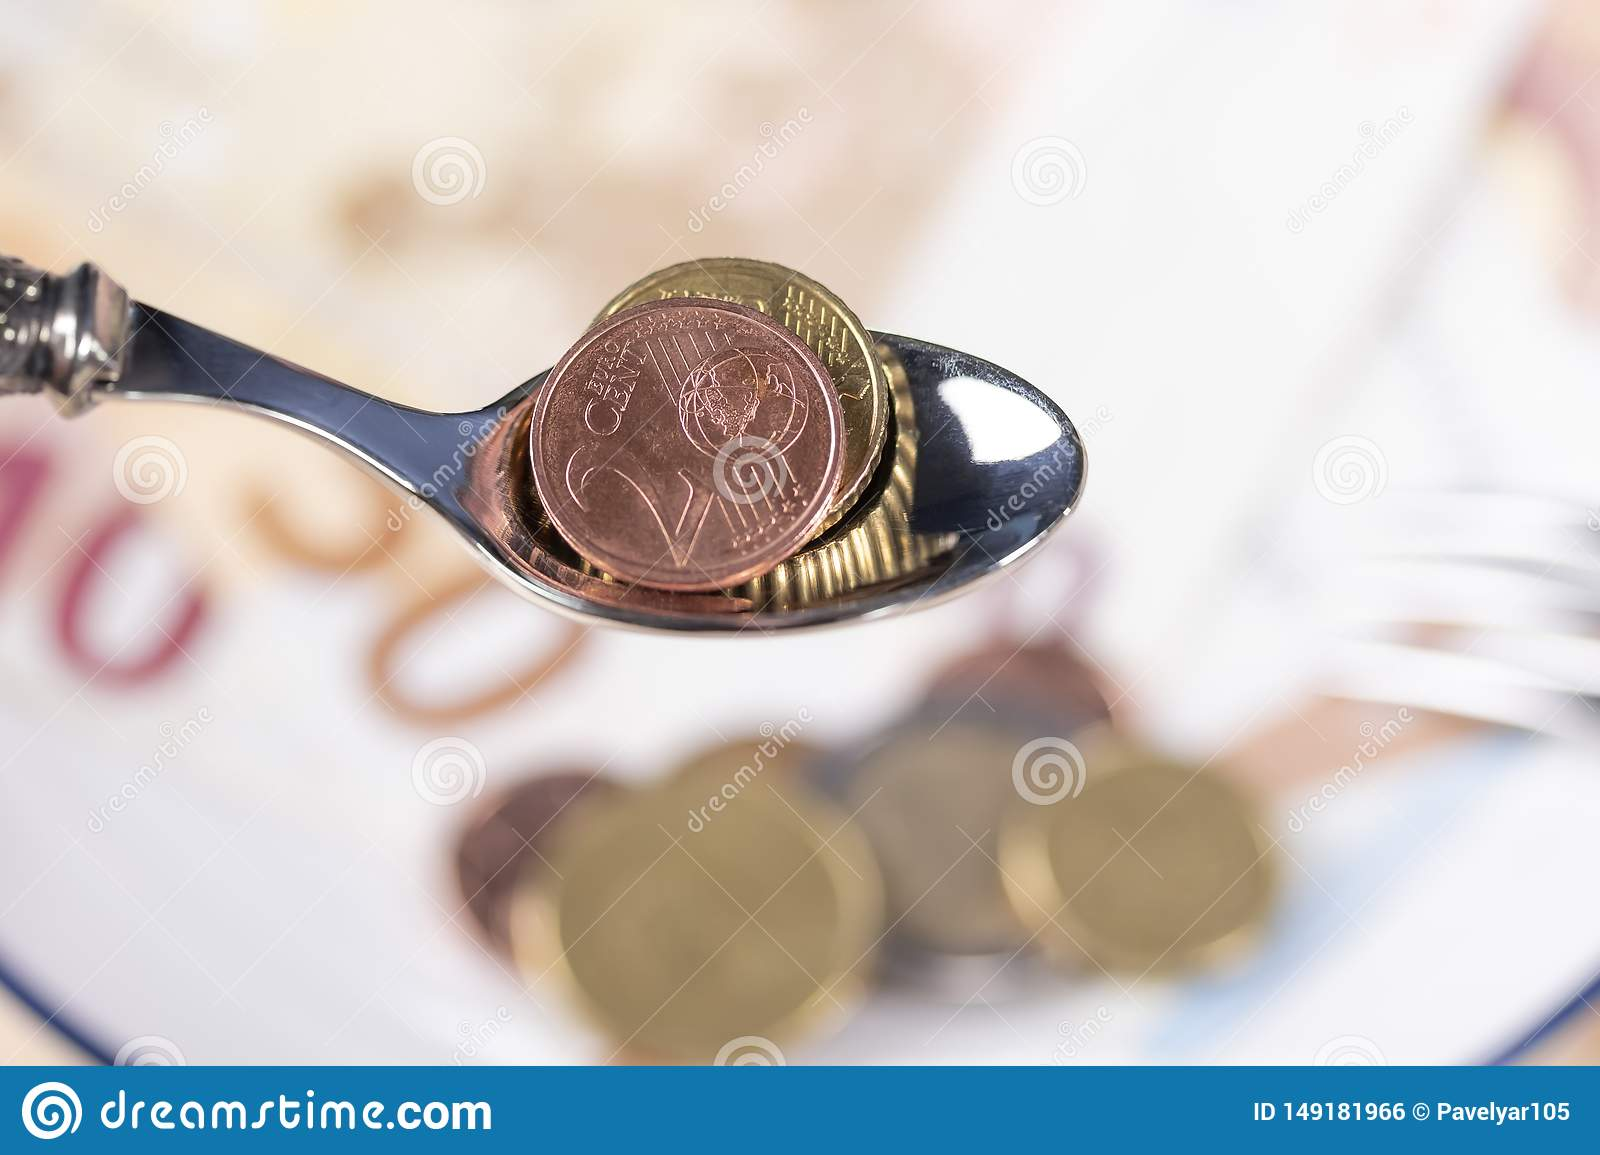 Euro coins in a dessert spoon over a plate of money with a blue border